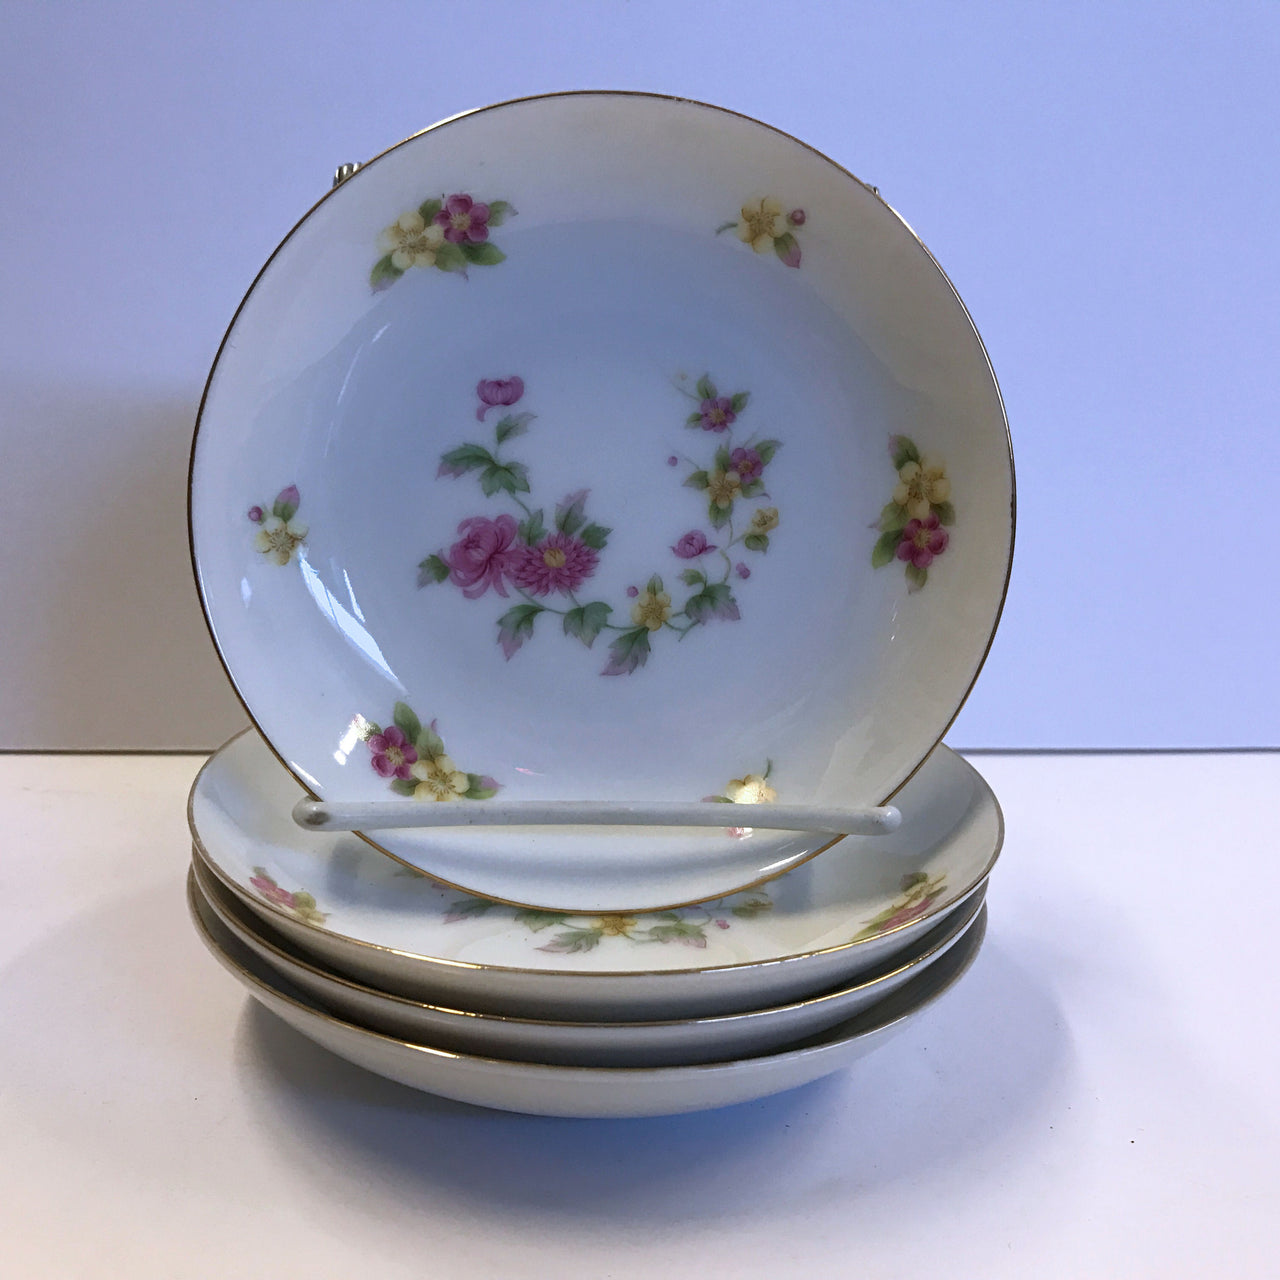 Cherry China Charmaine 4 Berry Dessert Sauce Bowls Roses Flowers